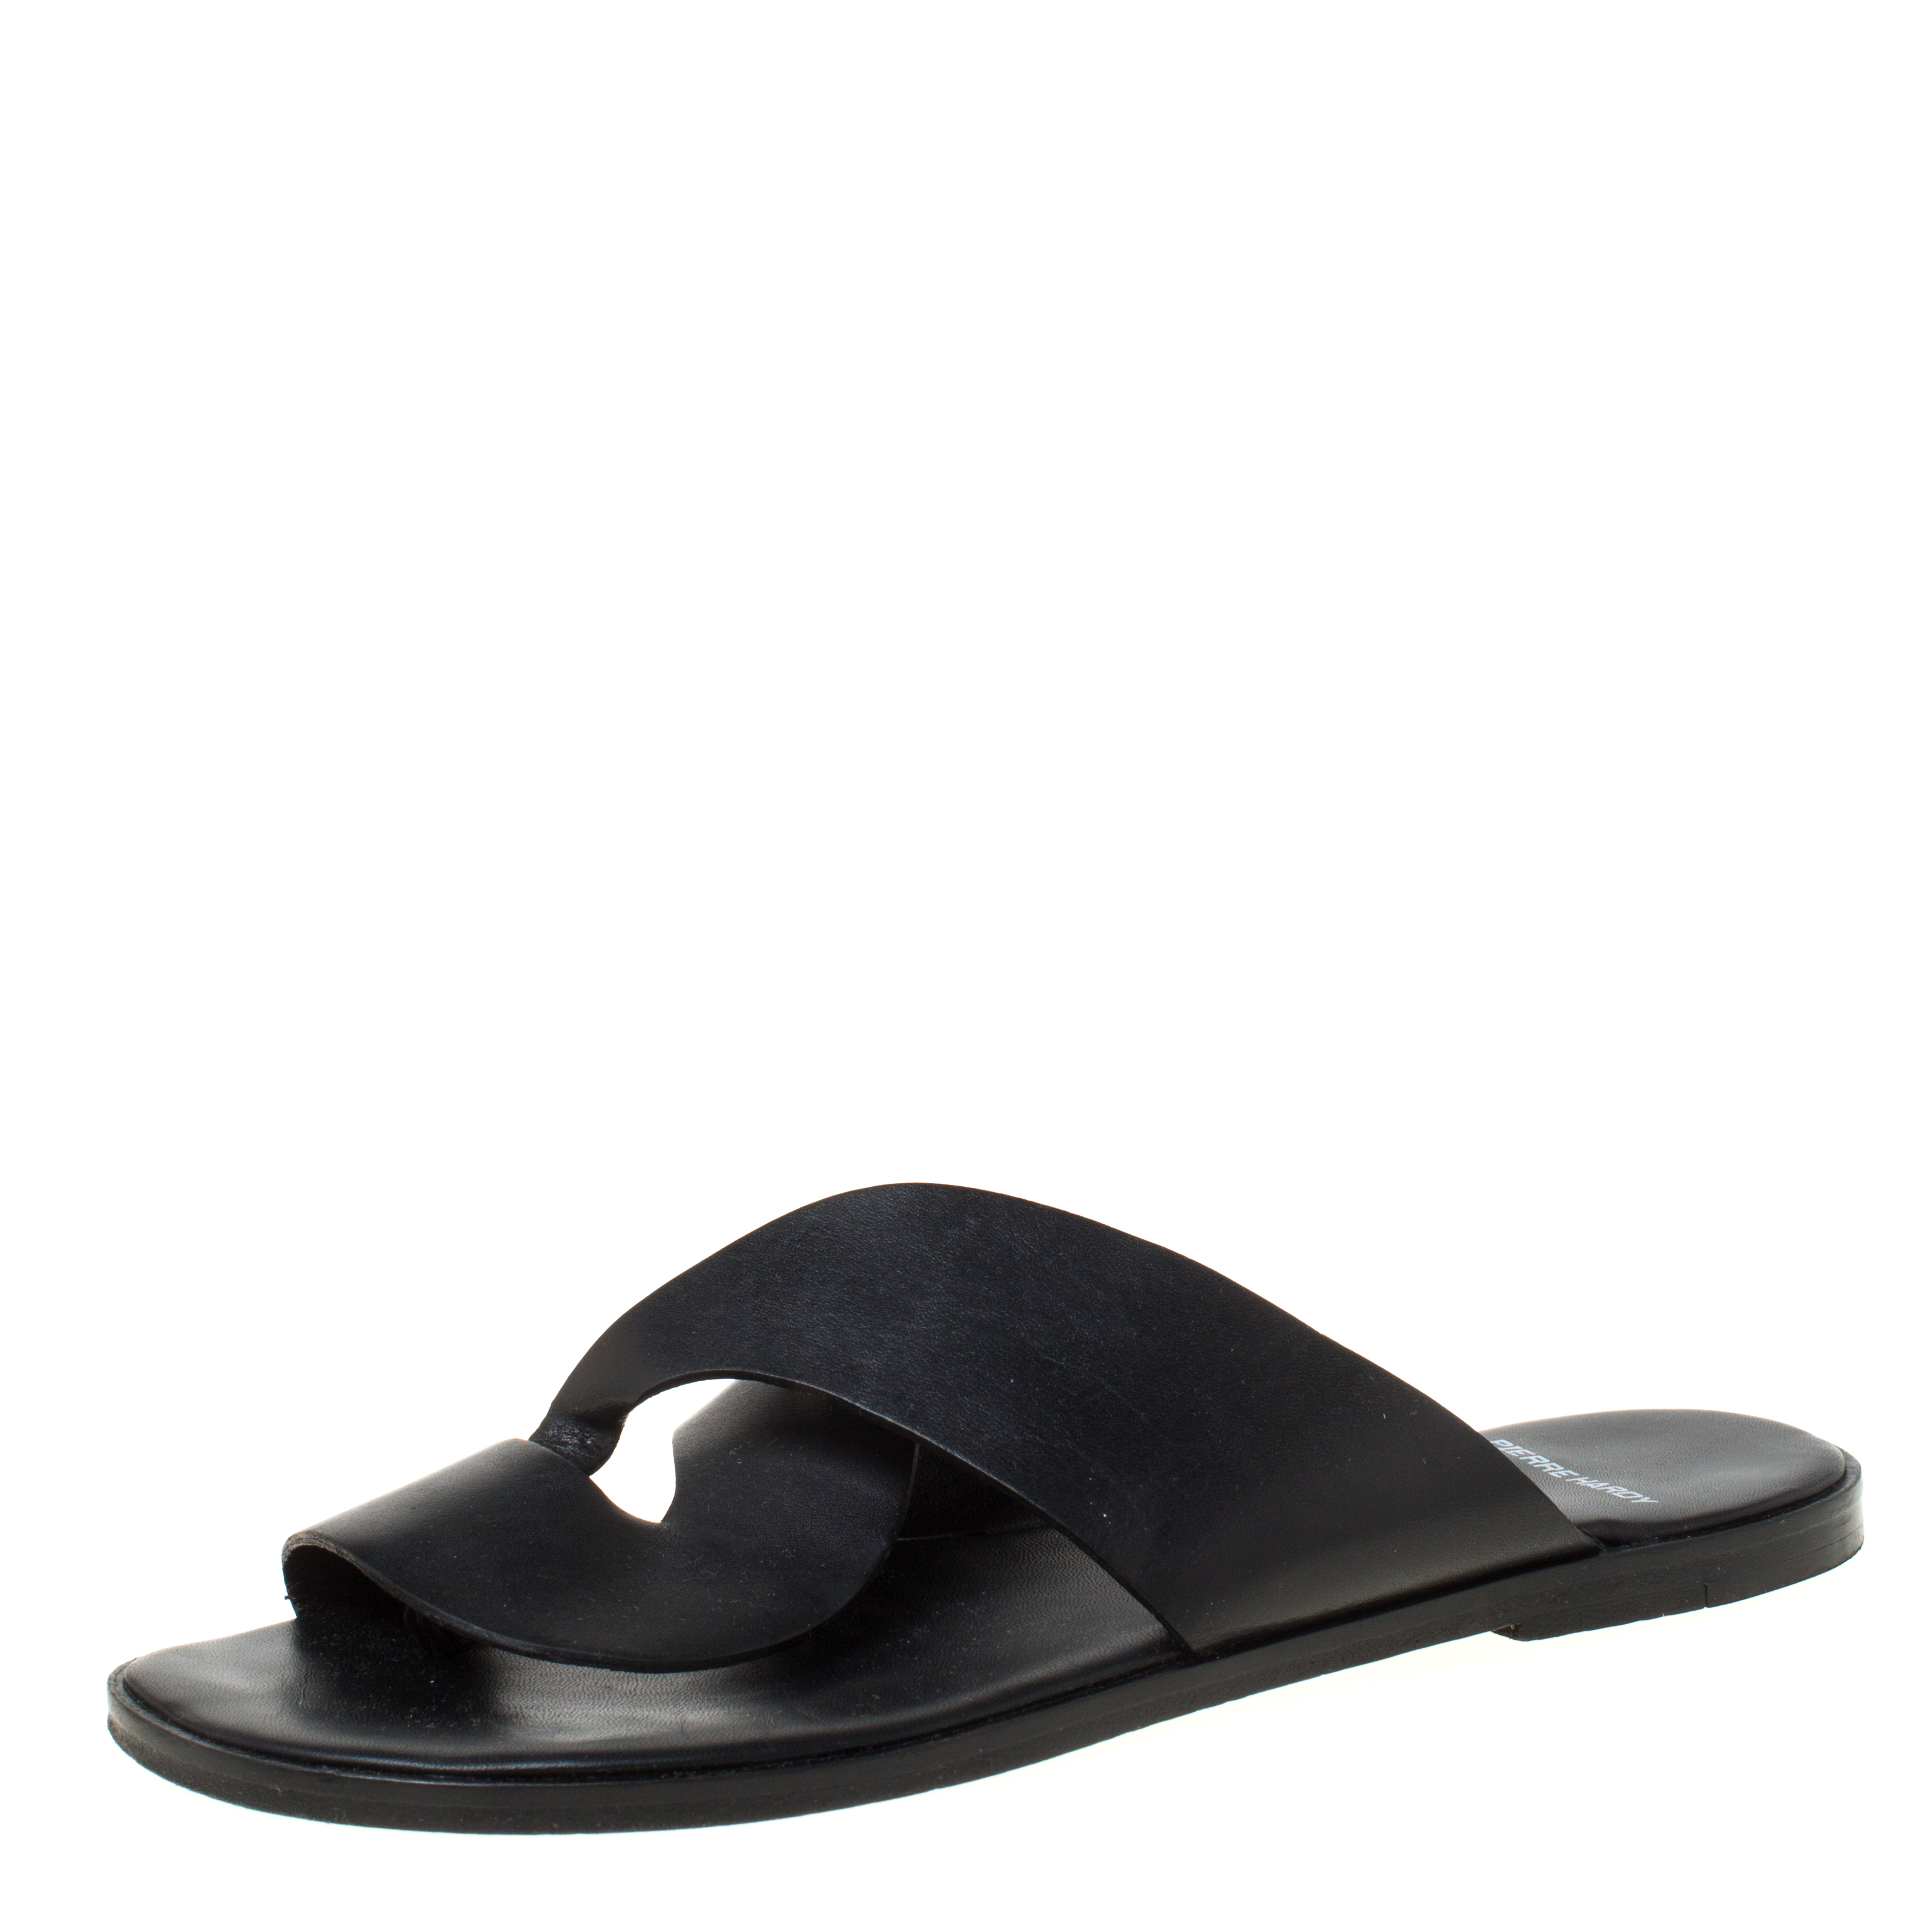 Pierre Hardy Black Twisted Leather Slide Sandals Size 38